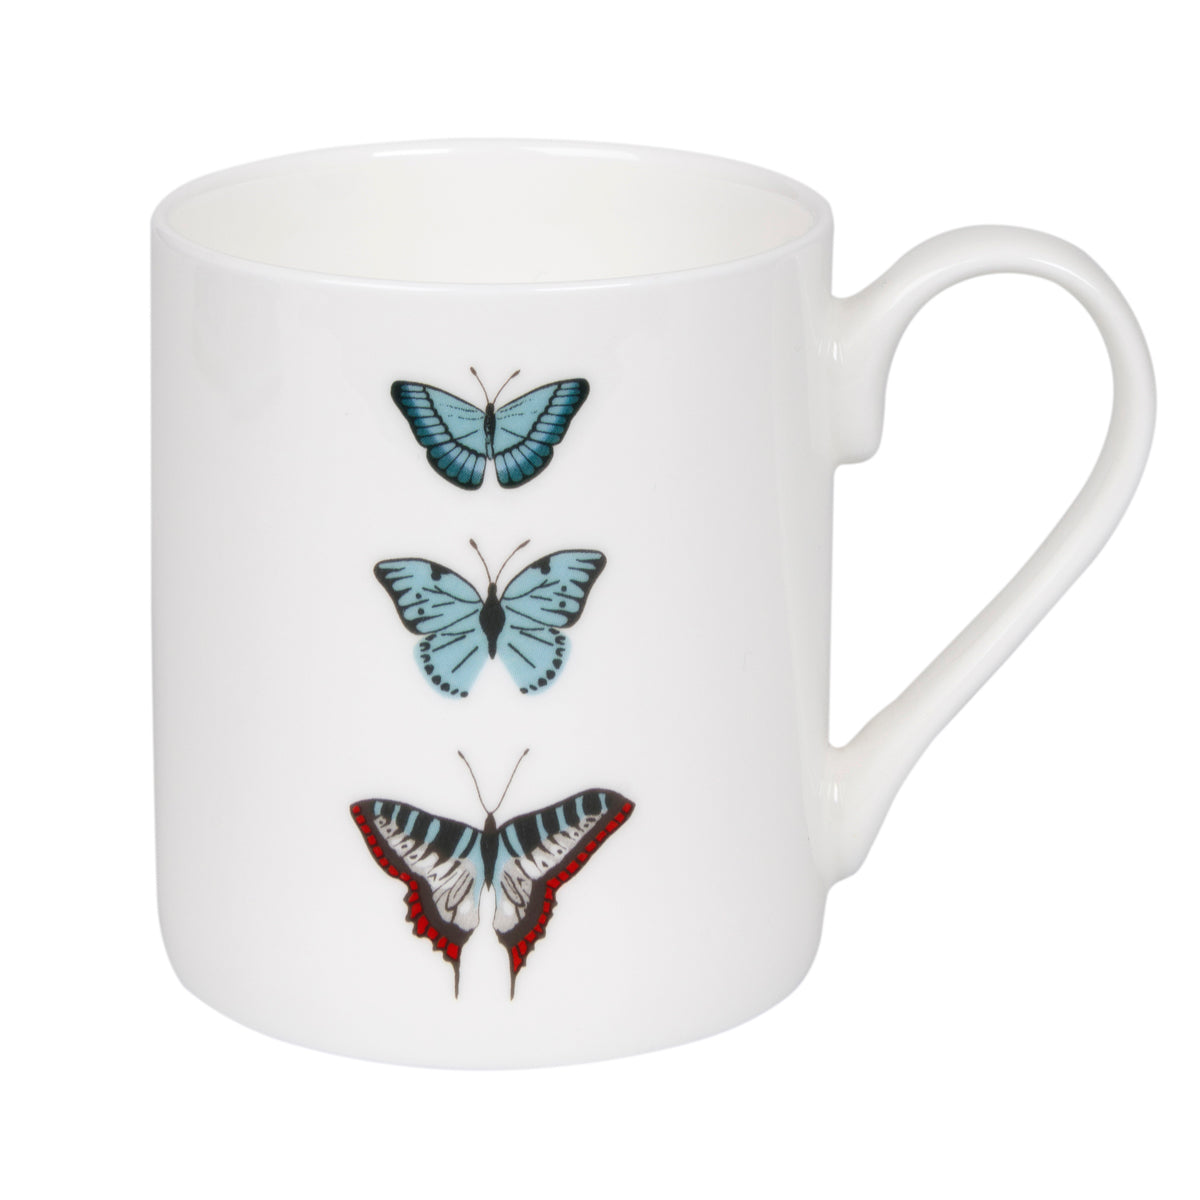 Sophie Allport fine bone china Butterflies Solo Mug feature three butterflies